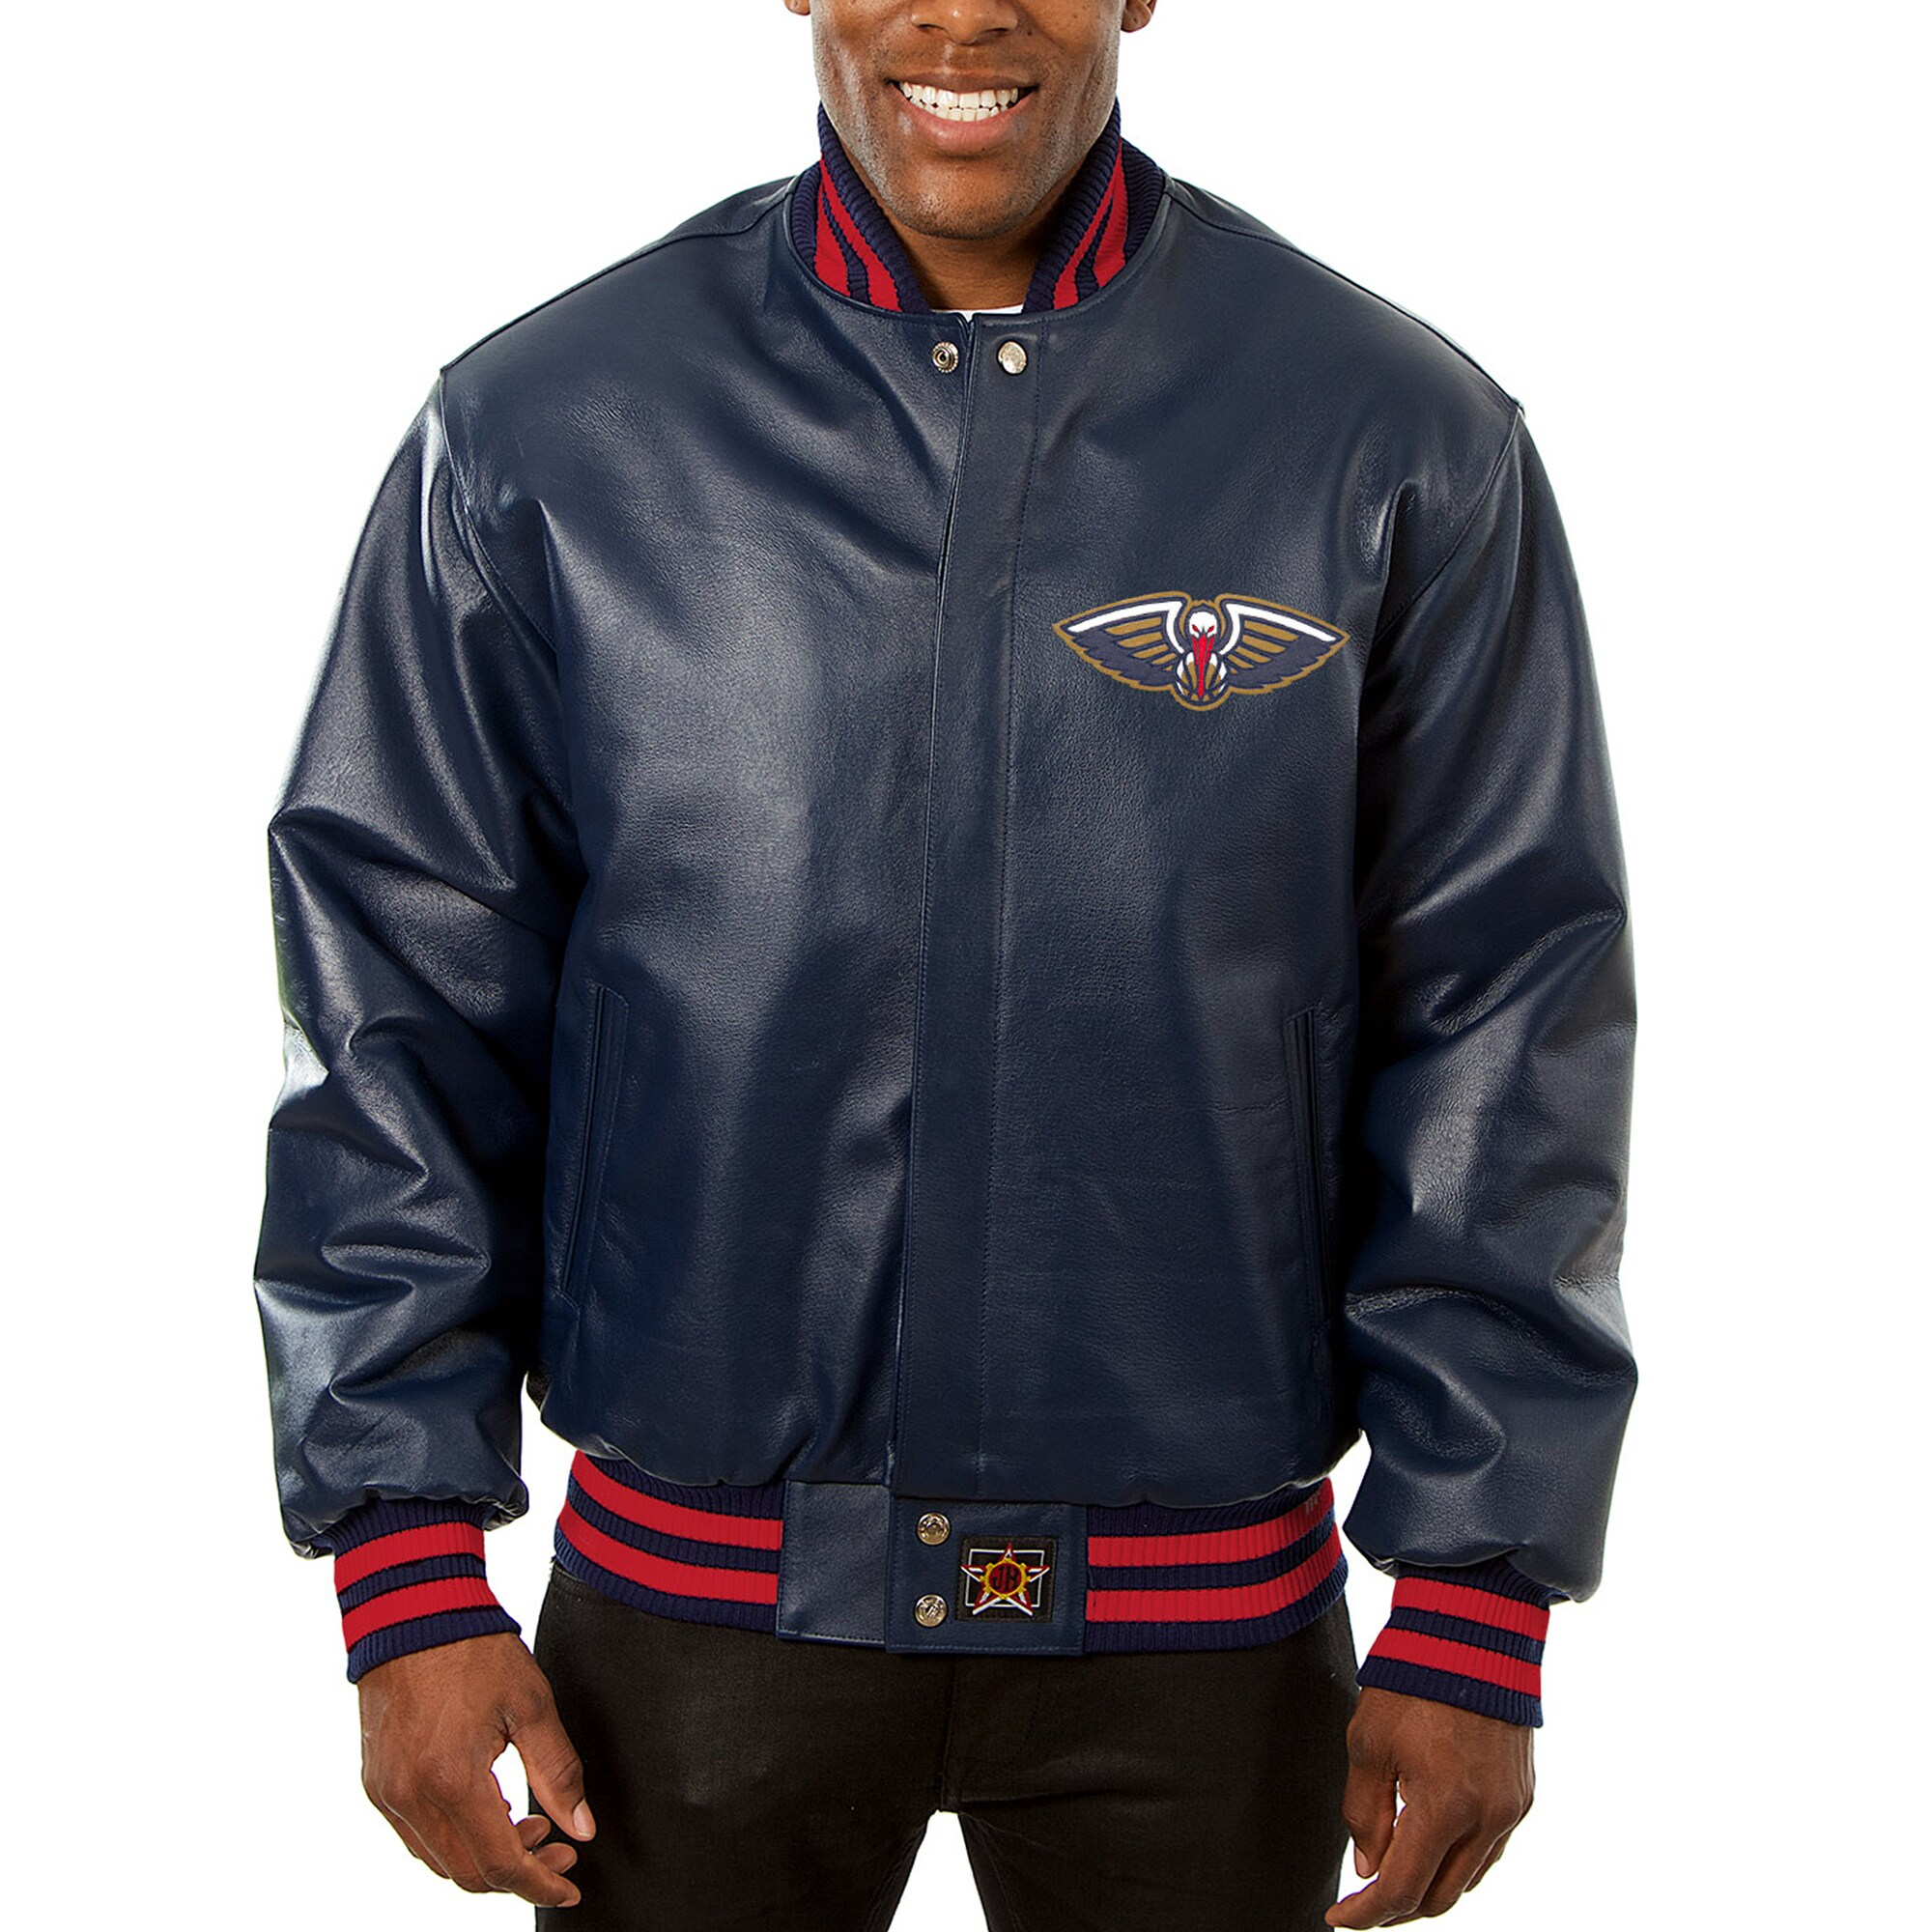 New Orleans Pelicans JH Design Big & Tall All-Leather Full-Snap Jacket - Navy